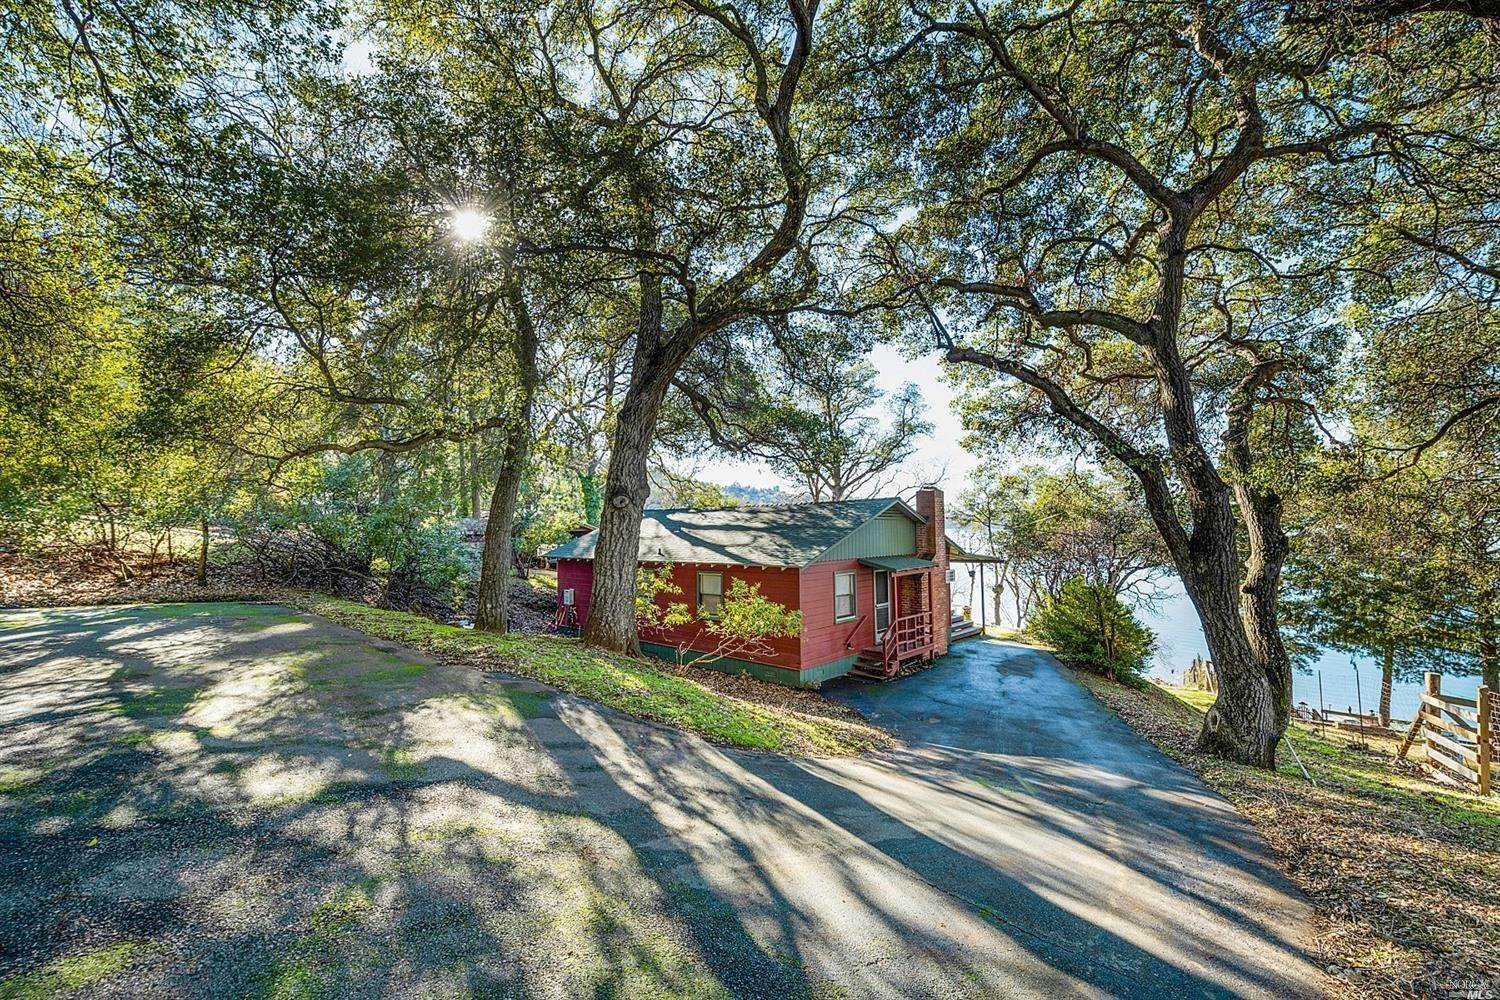 Single Family Homes for Sale at 1975 Westlake Drive Kelseyville, California 95451 United States